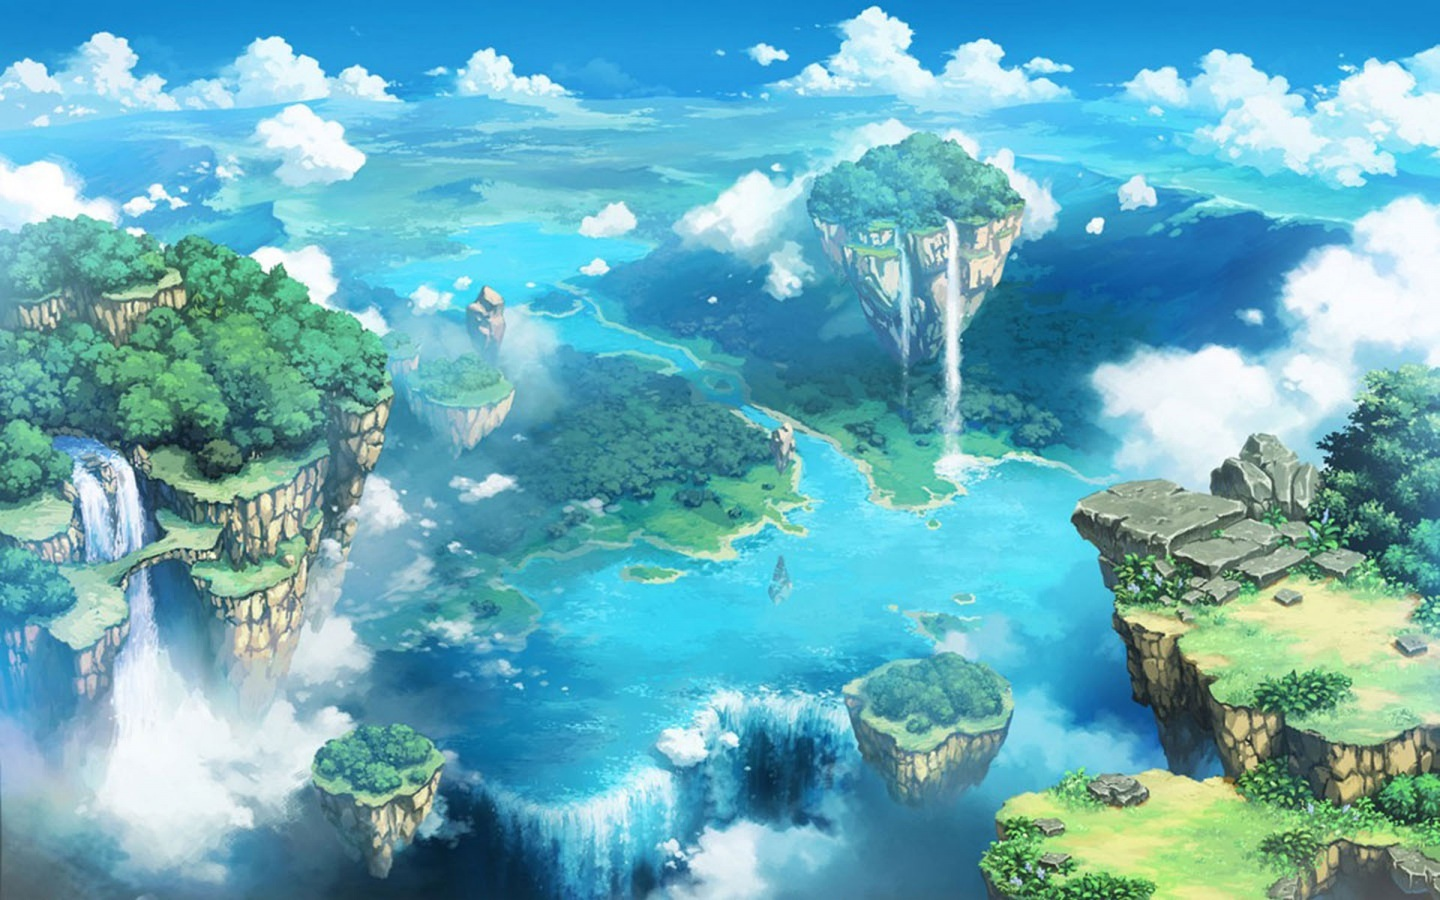 Animated Waterfall Wallpapers For Mobile Waterfall Flying Islands River Wallpapers Waterfall